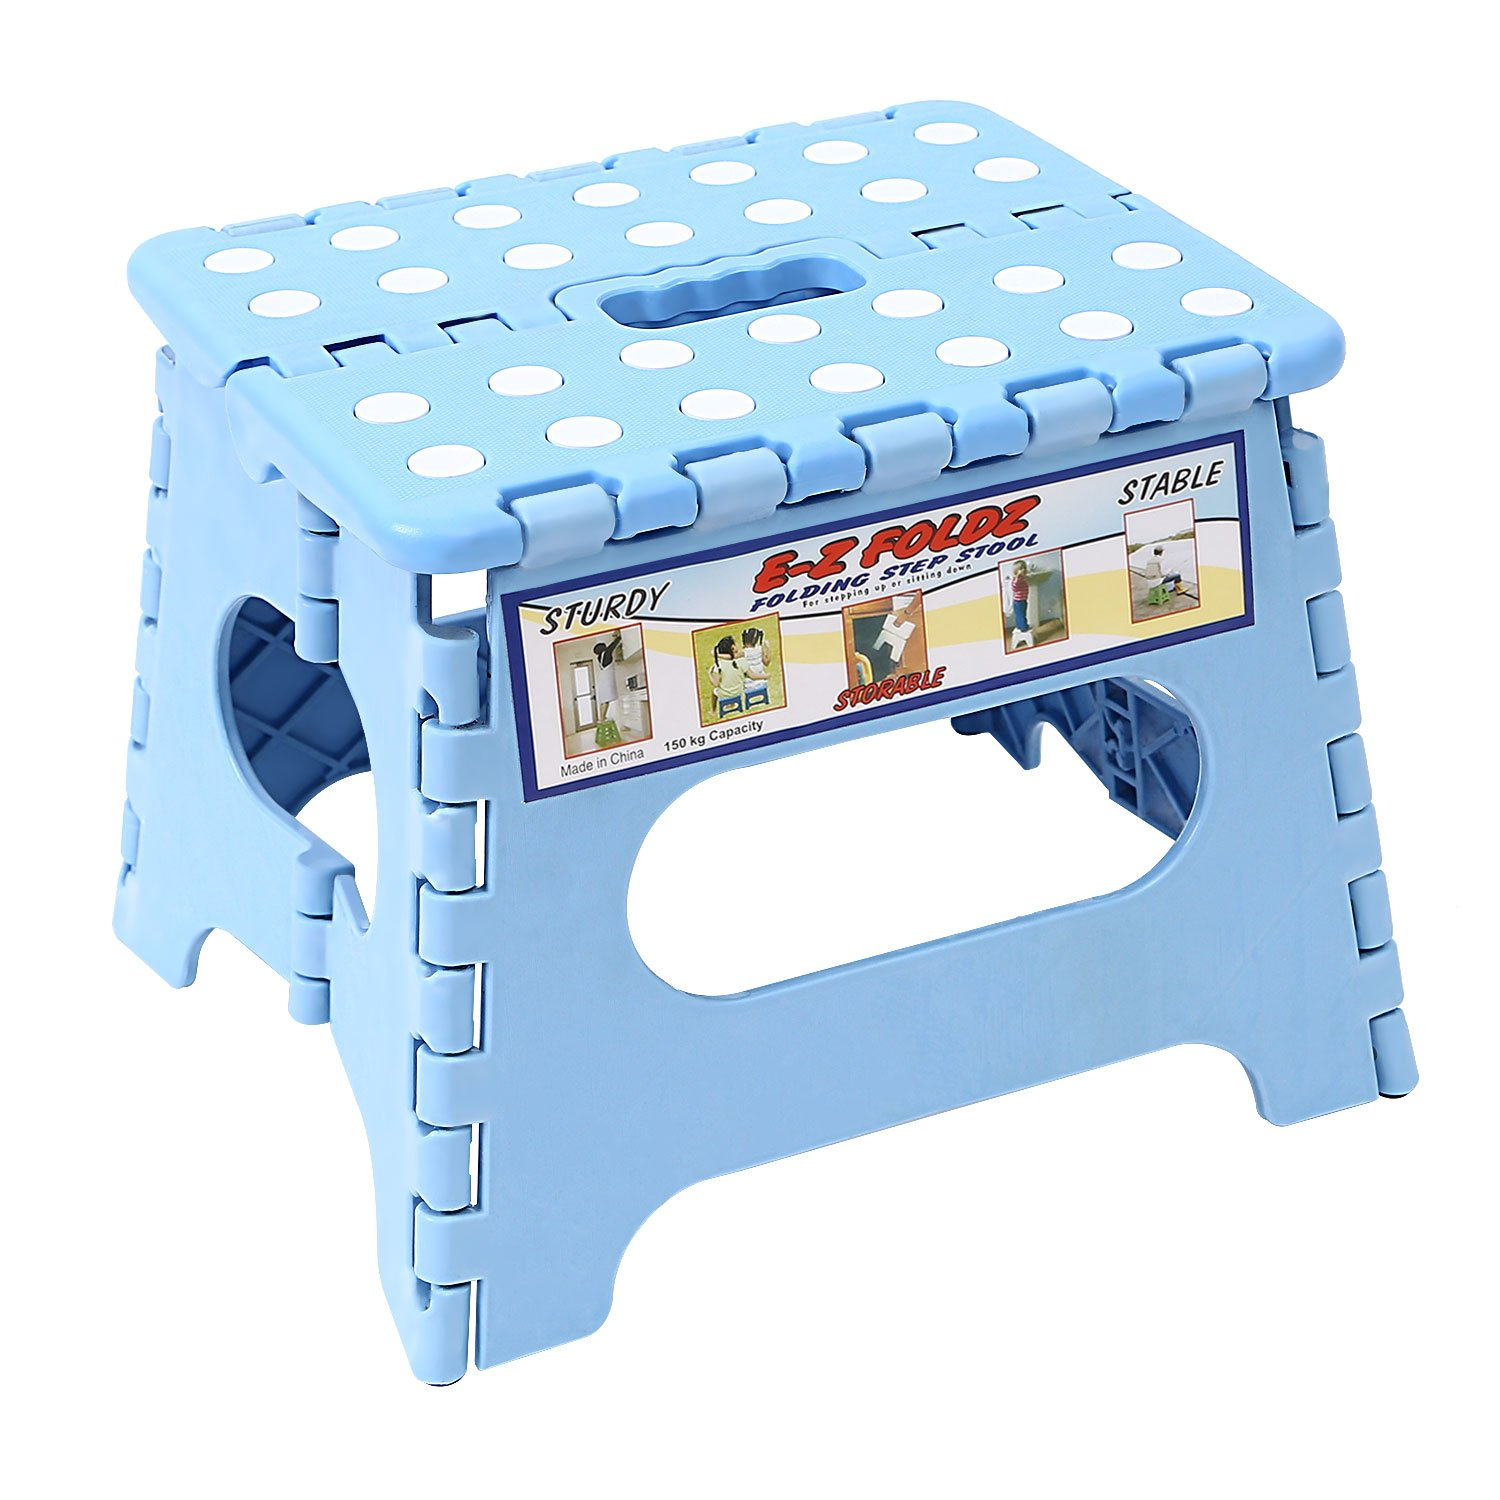 Maddott Super Strong Folding Step Stool for Adults and Kids, 8x6x7.5inch, Holds up to 180 Lb, Blue